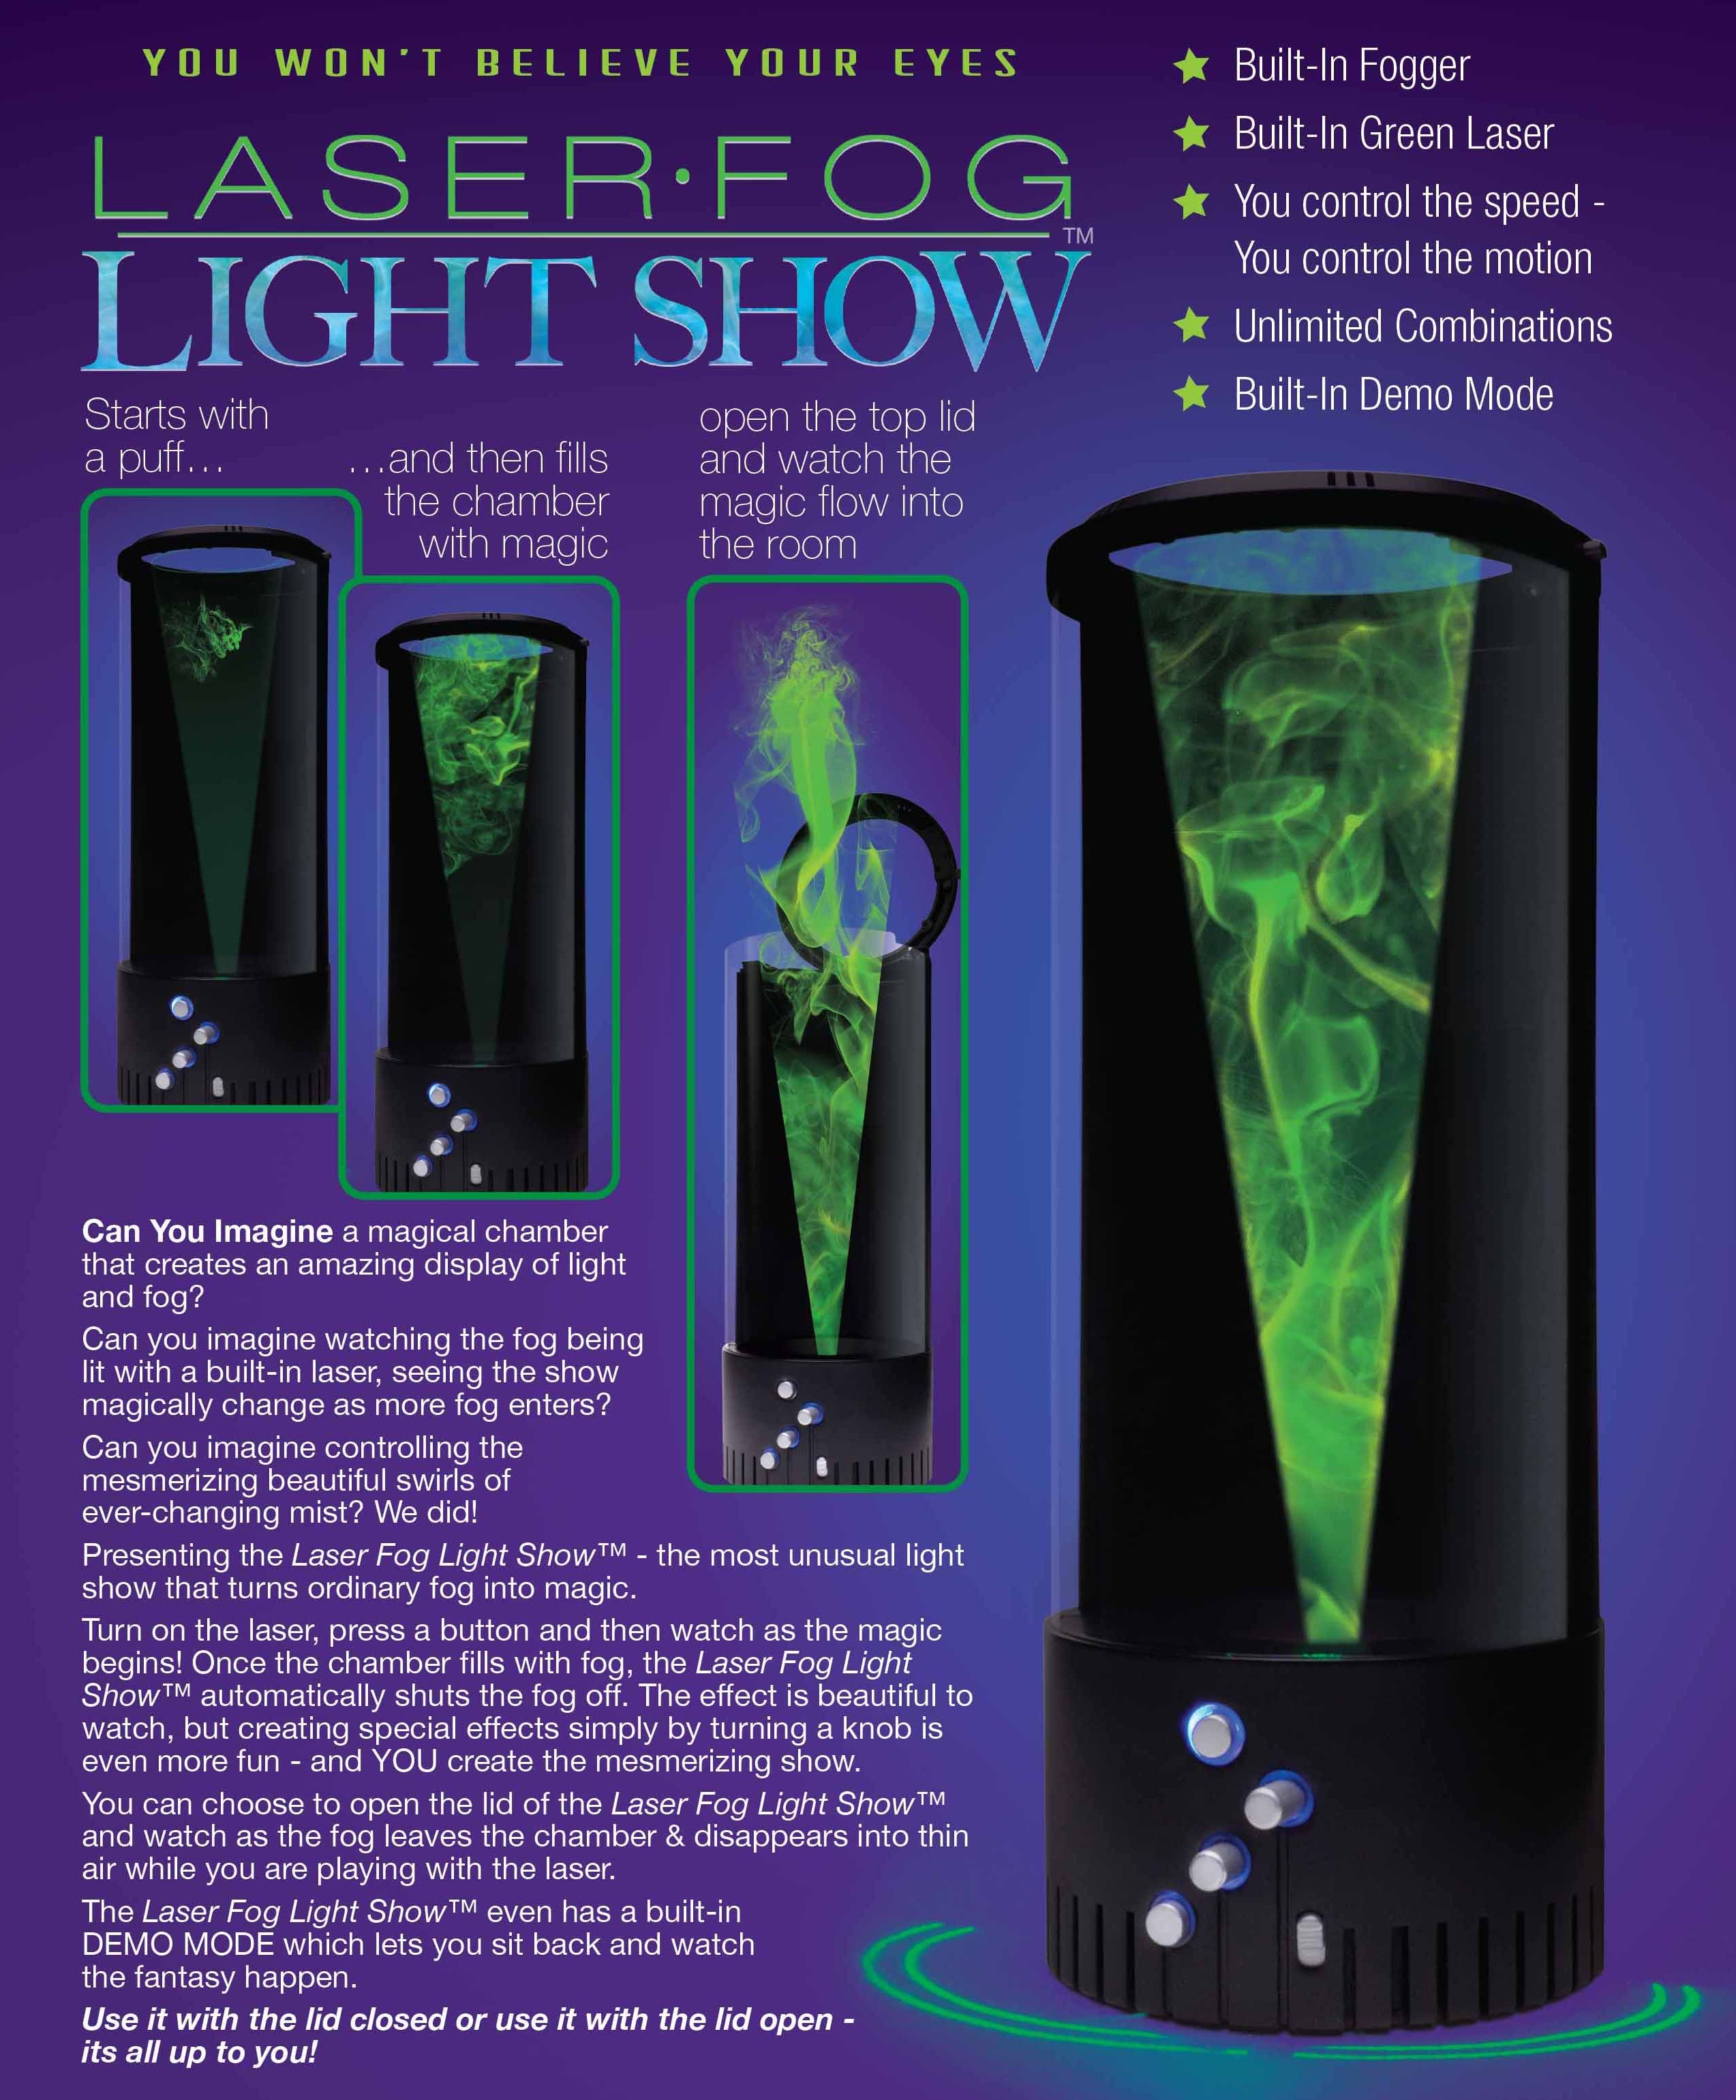 laser fog light show for the perfect christmas gift in 2012 order now for late november or early december delivery - Laser Light Show Christmas